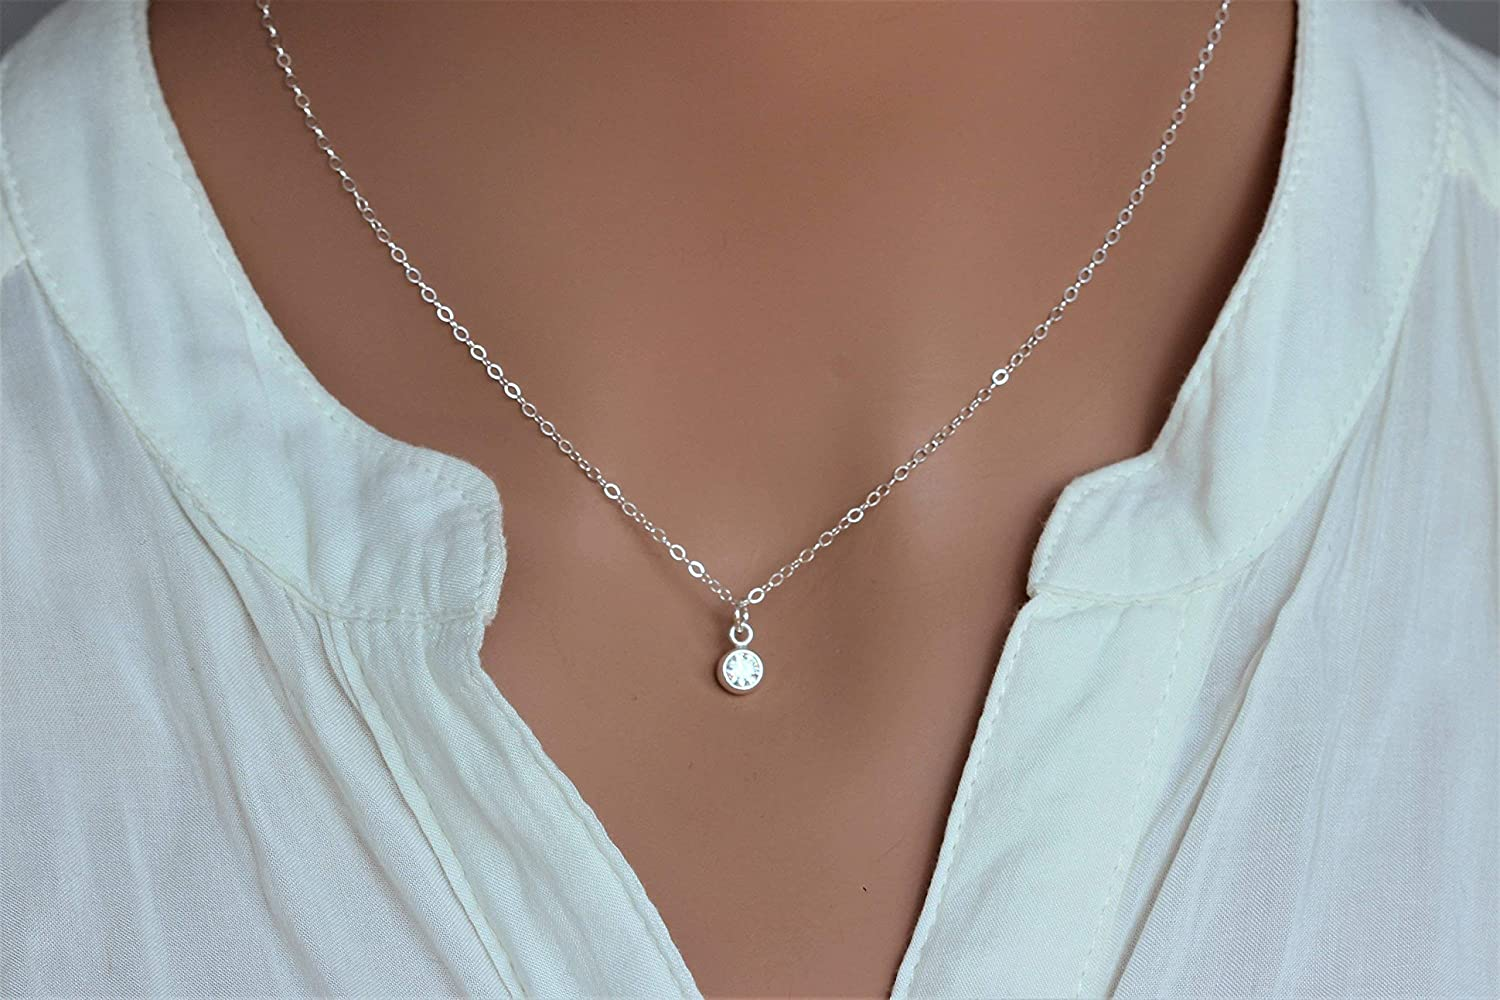 Sterling Silver Crystal Charm Pendant Choker Tiny Sparkling Necklace Dainty Everyday Short Simple Jewelry